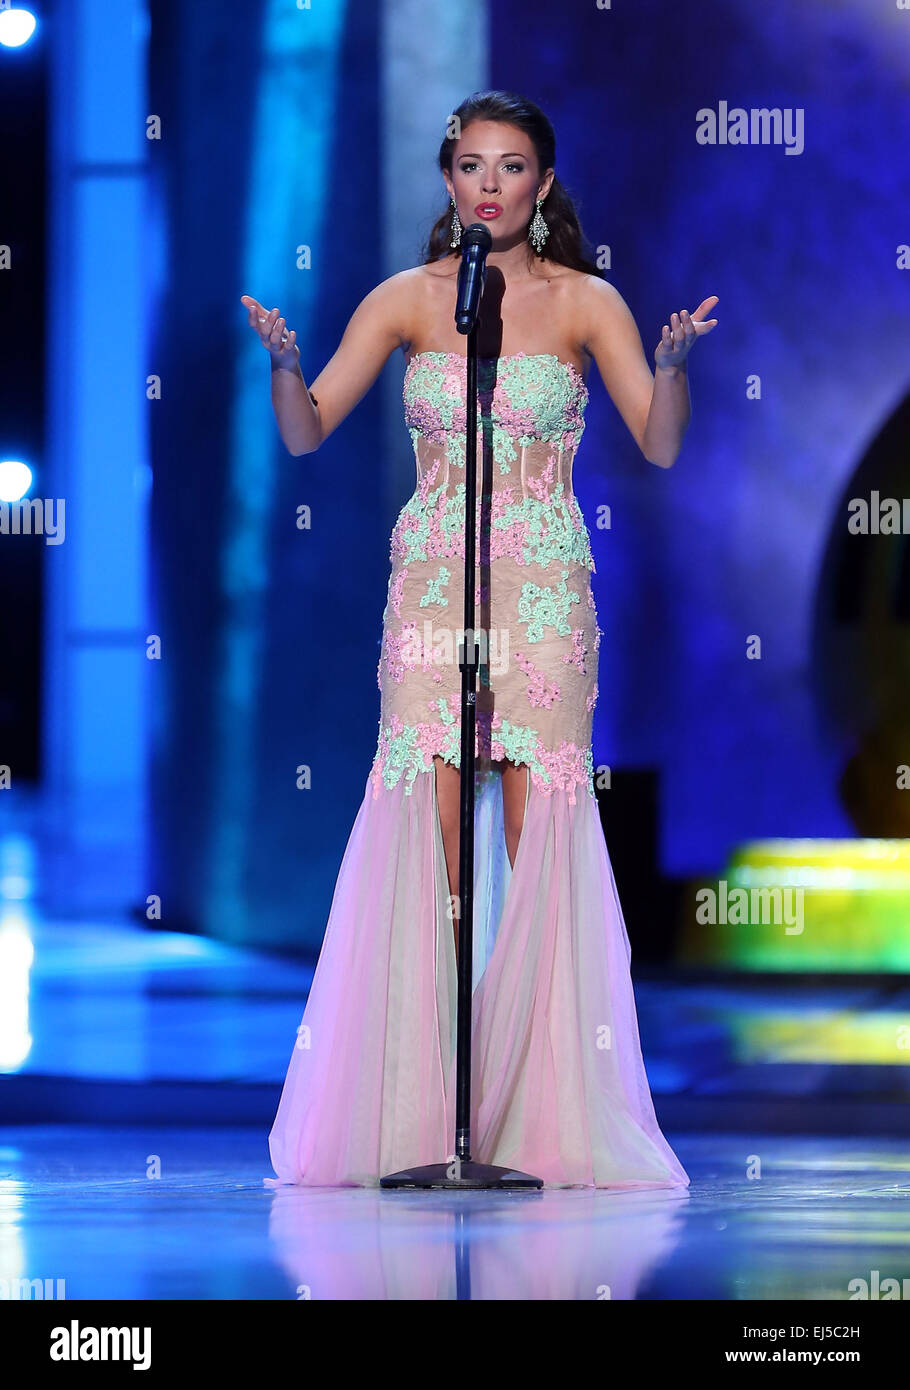 Miss Oregon Rebecca Anderson High Resolution Stock Photography and Images -  Alamy